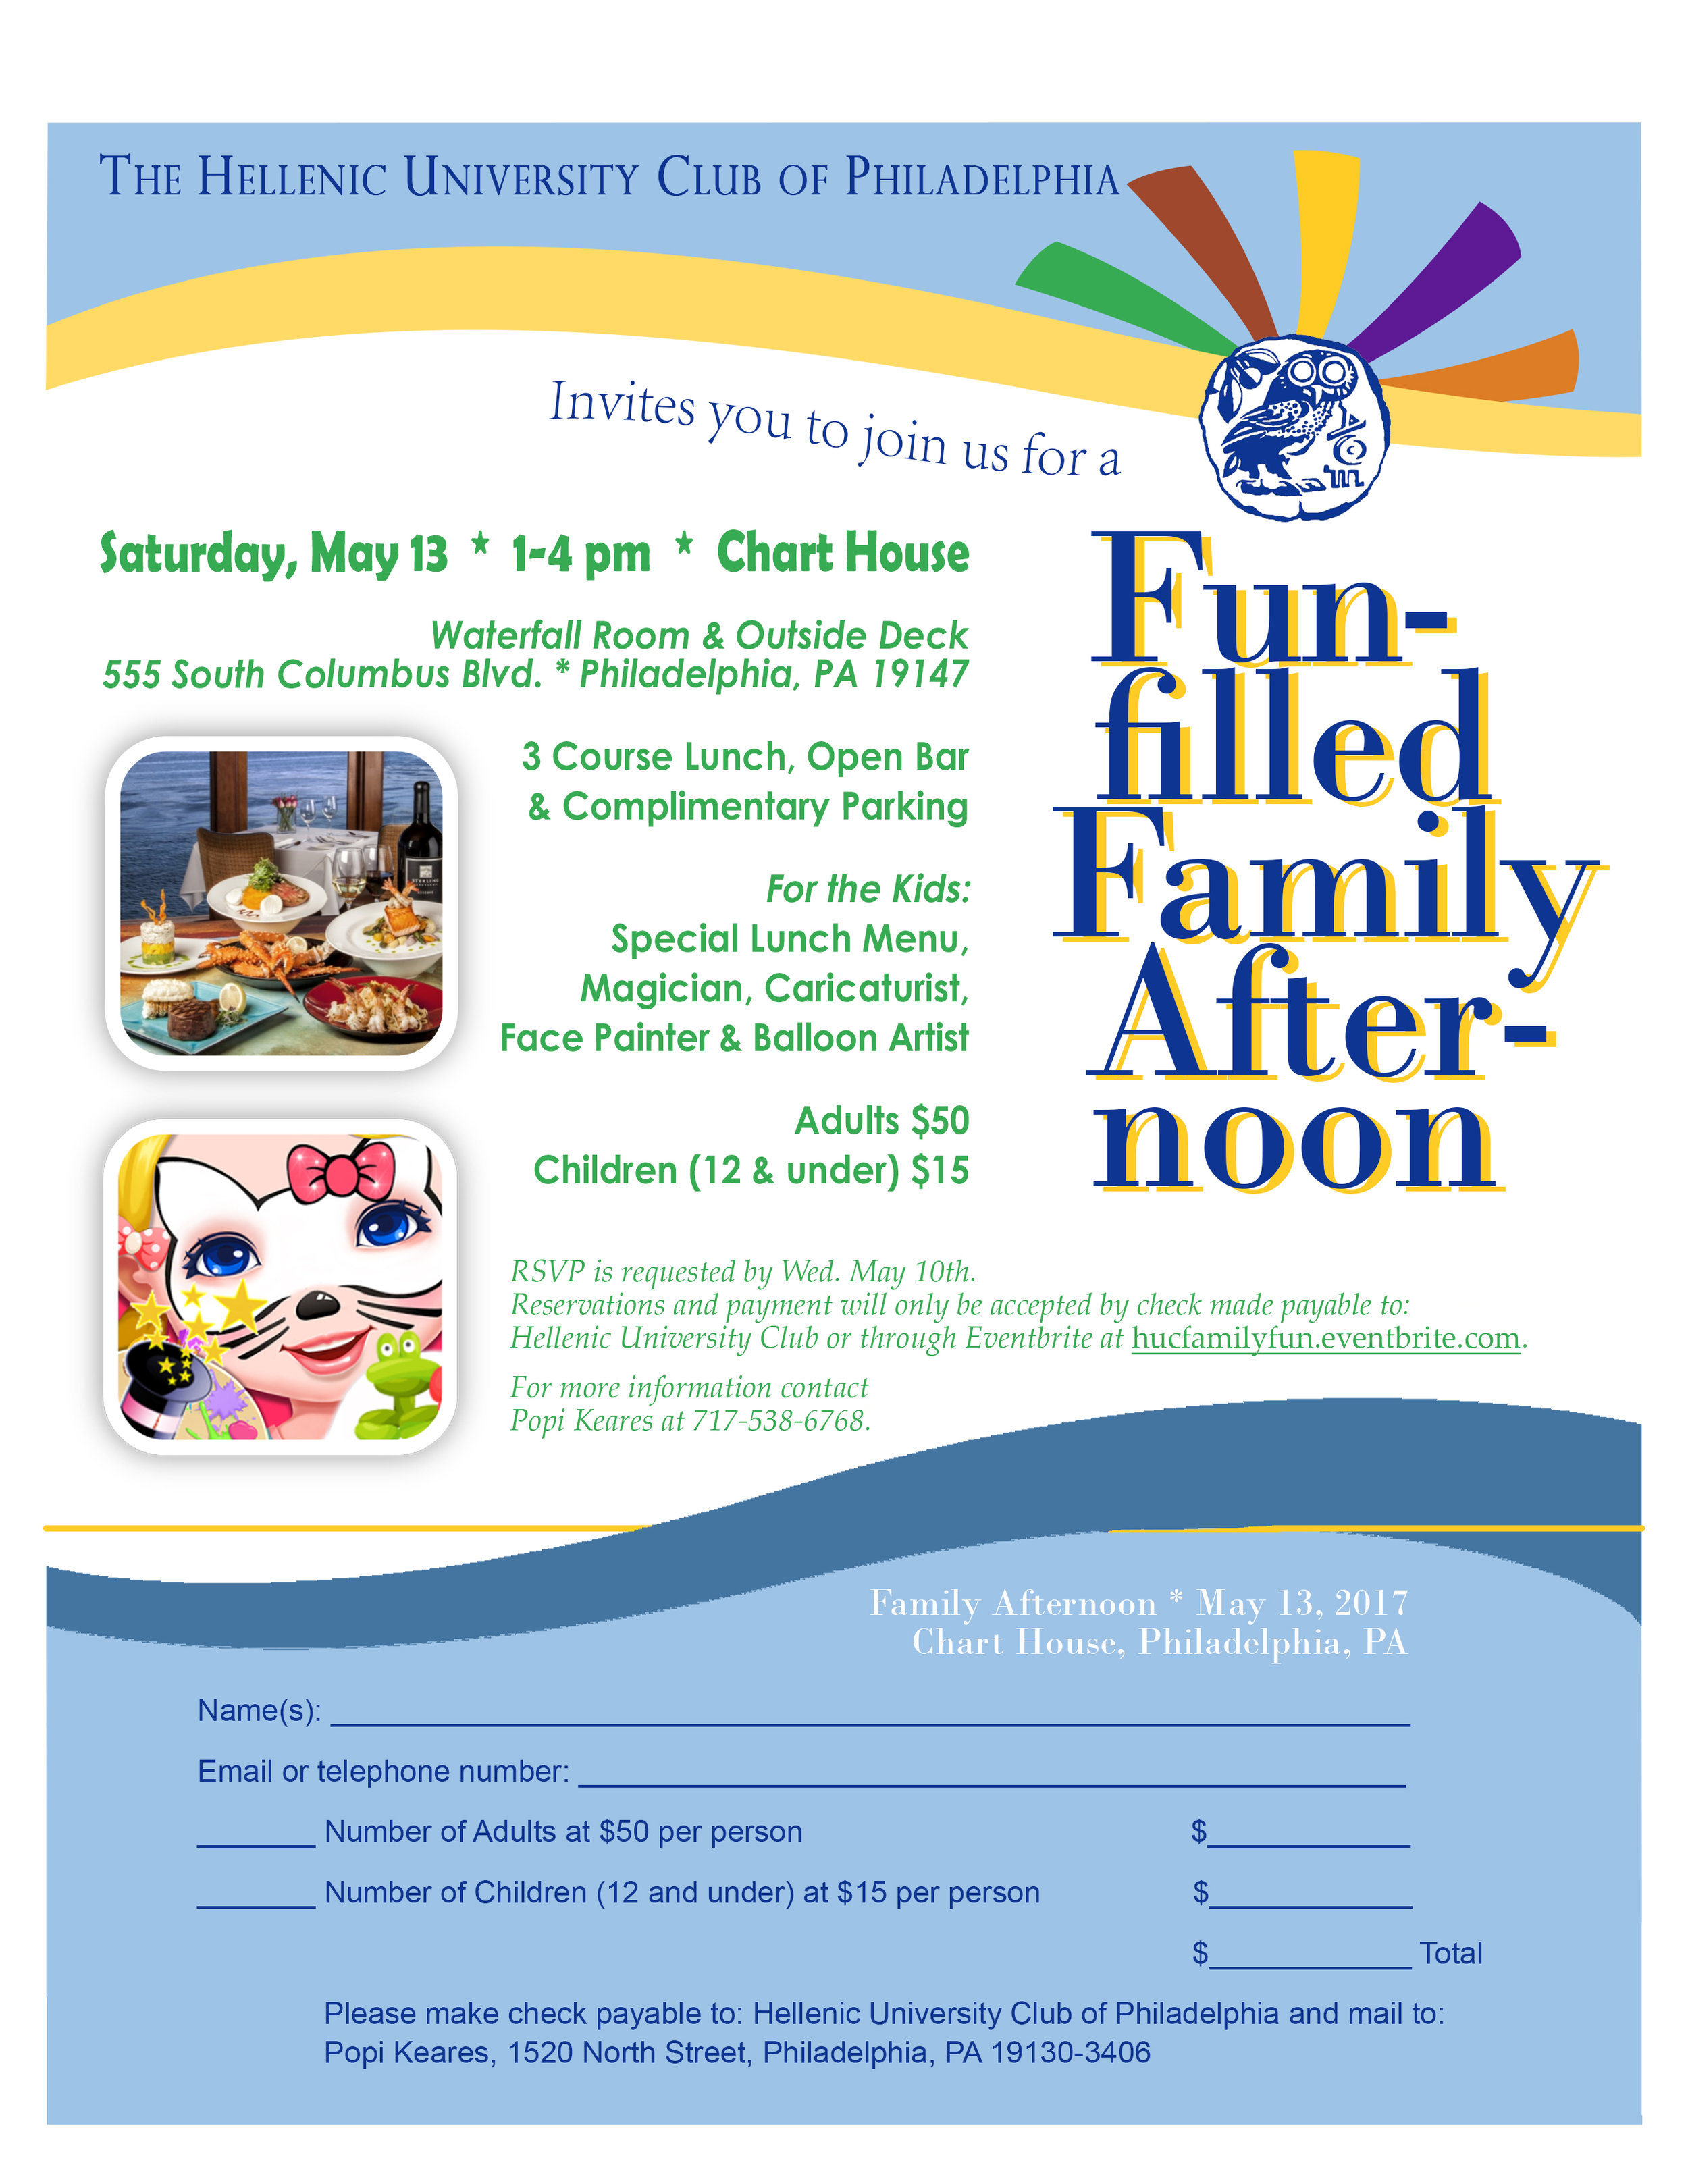 HUC Family Afternoon May 13th Final .jpg